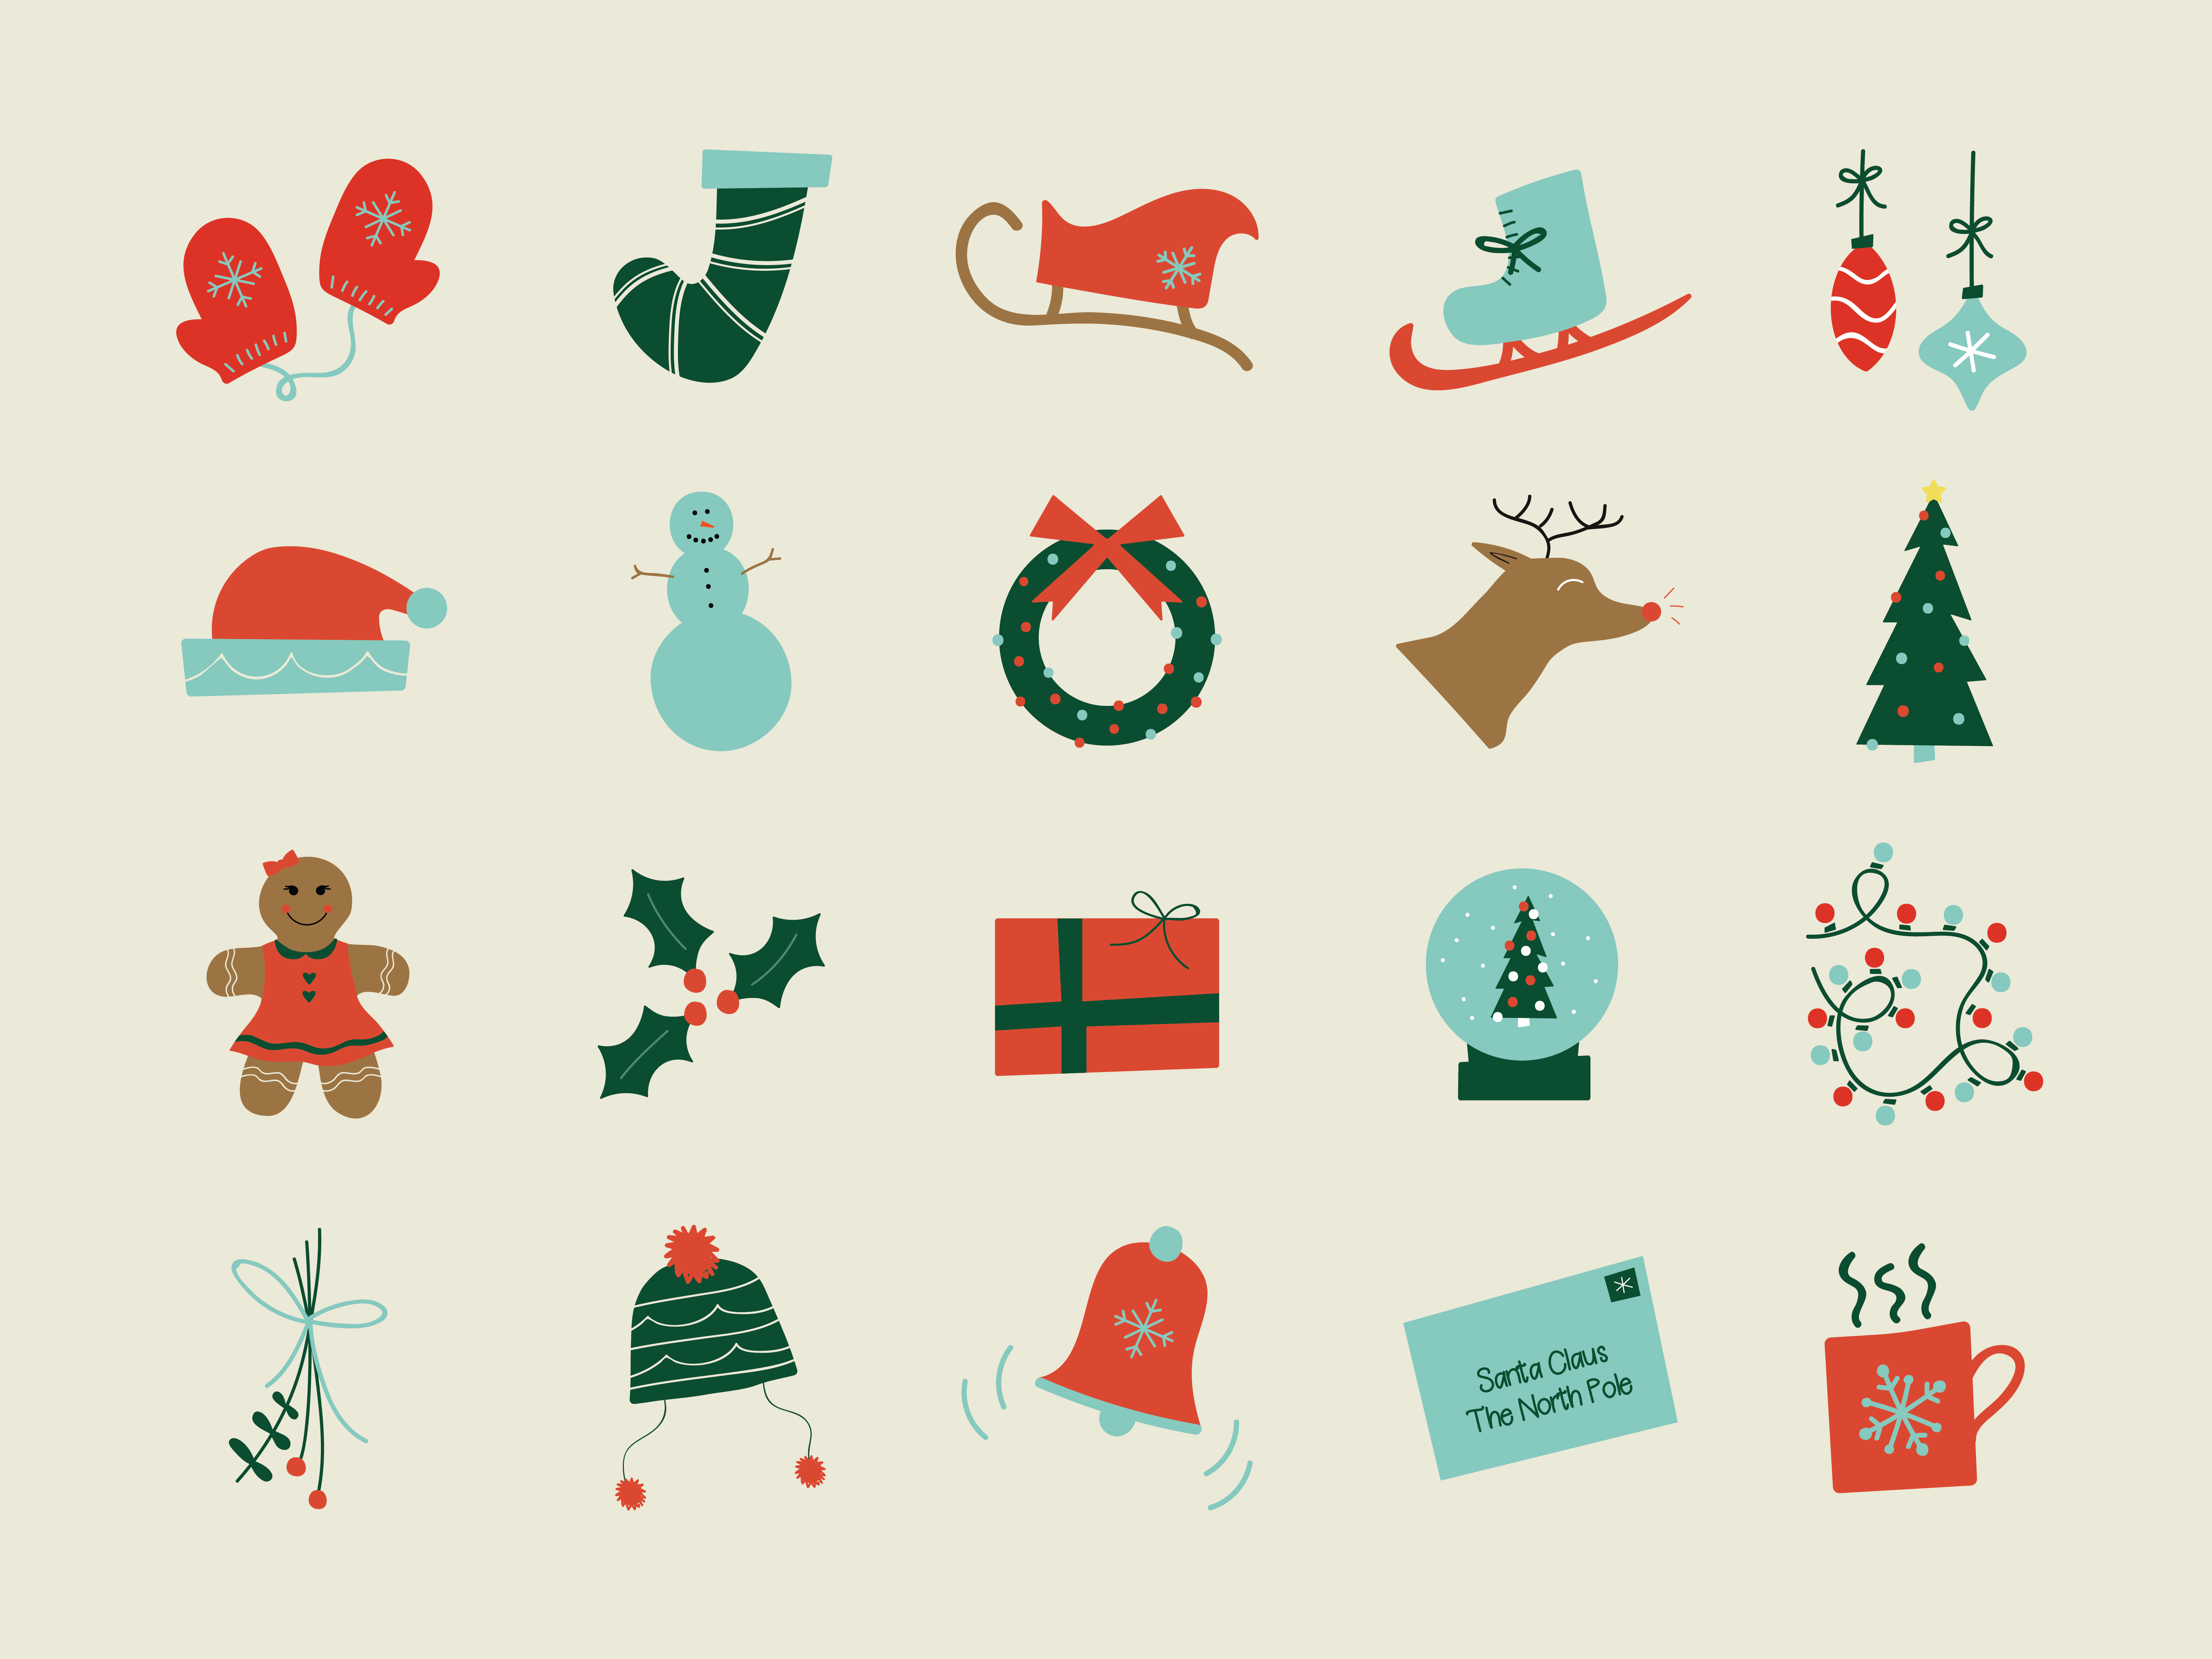 Christmas Illustrations Png.Dribbble Christmas Crafts Dribbble 31 Png By Kirbie Koonse